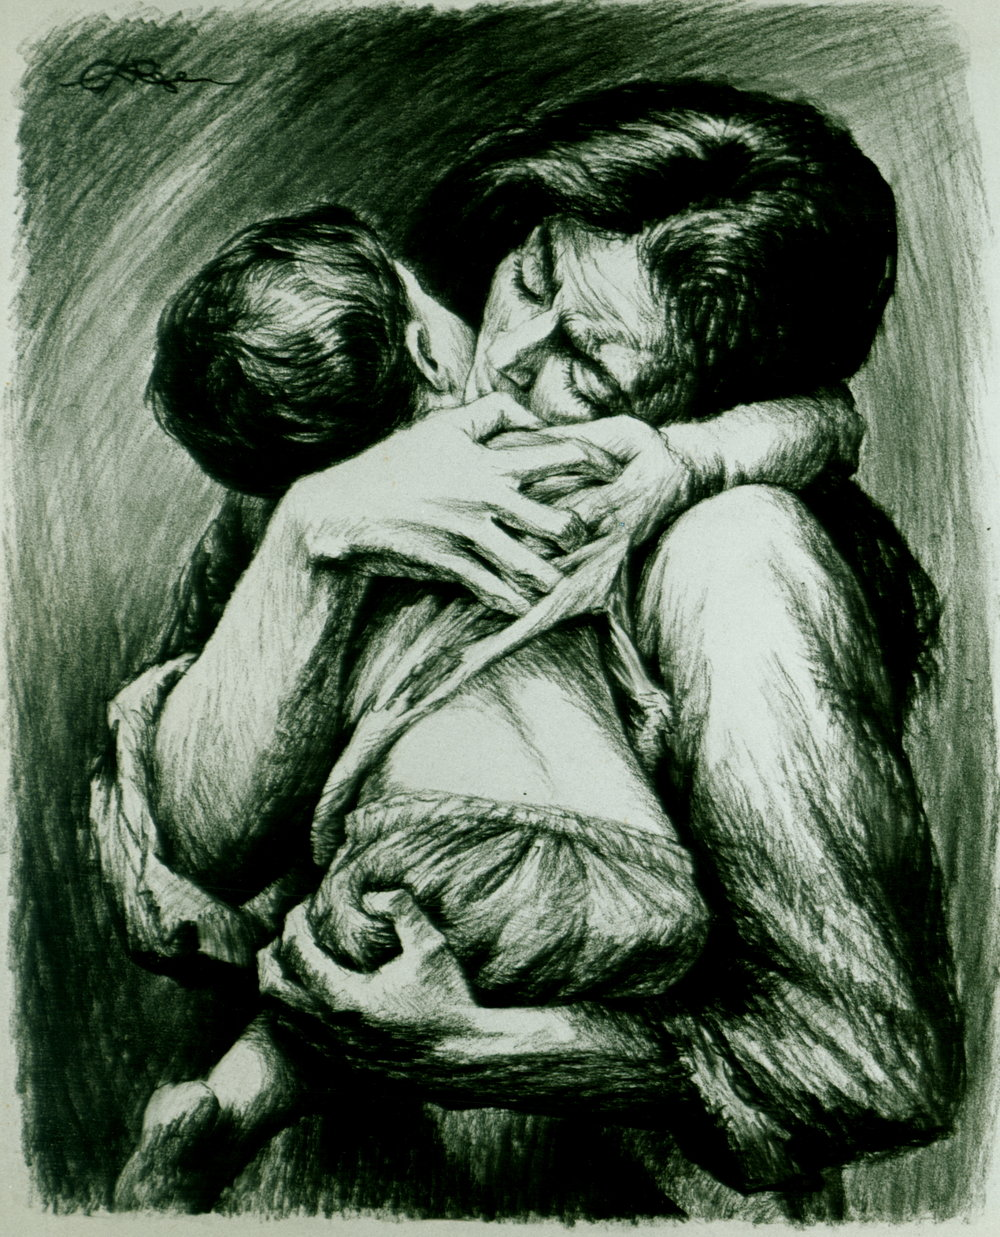 """December 20, 1964 - """"At Christmas Remember the Neediest!"""" (Sketch)"""